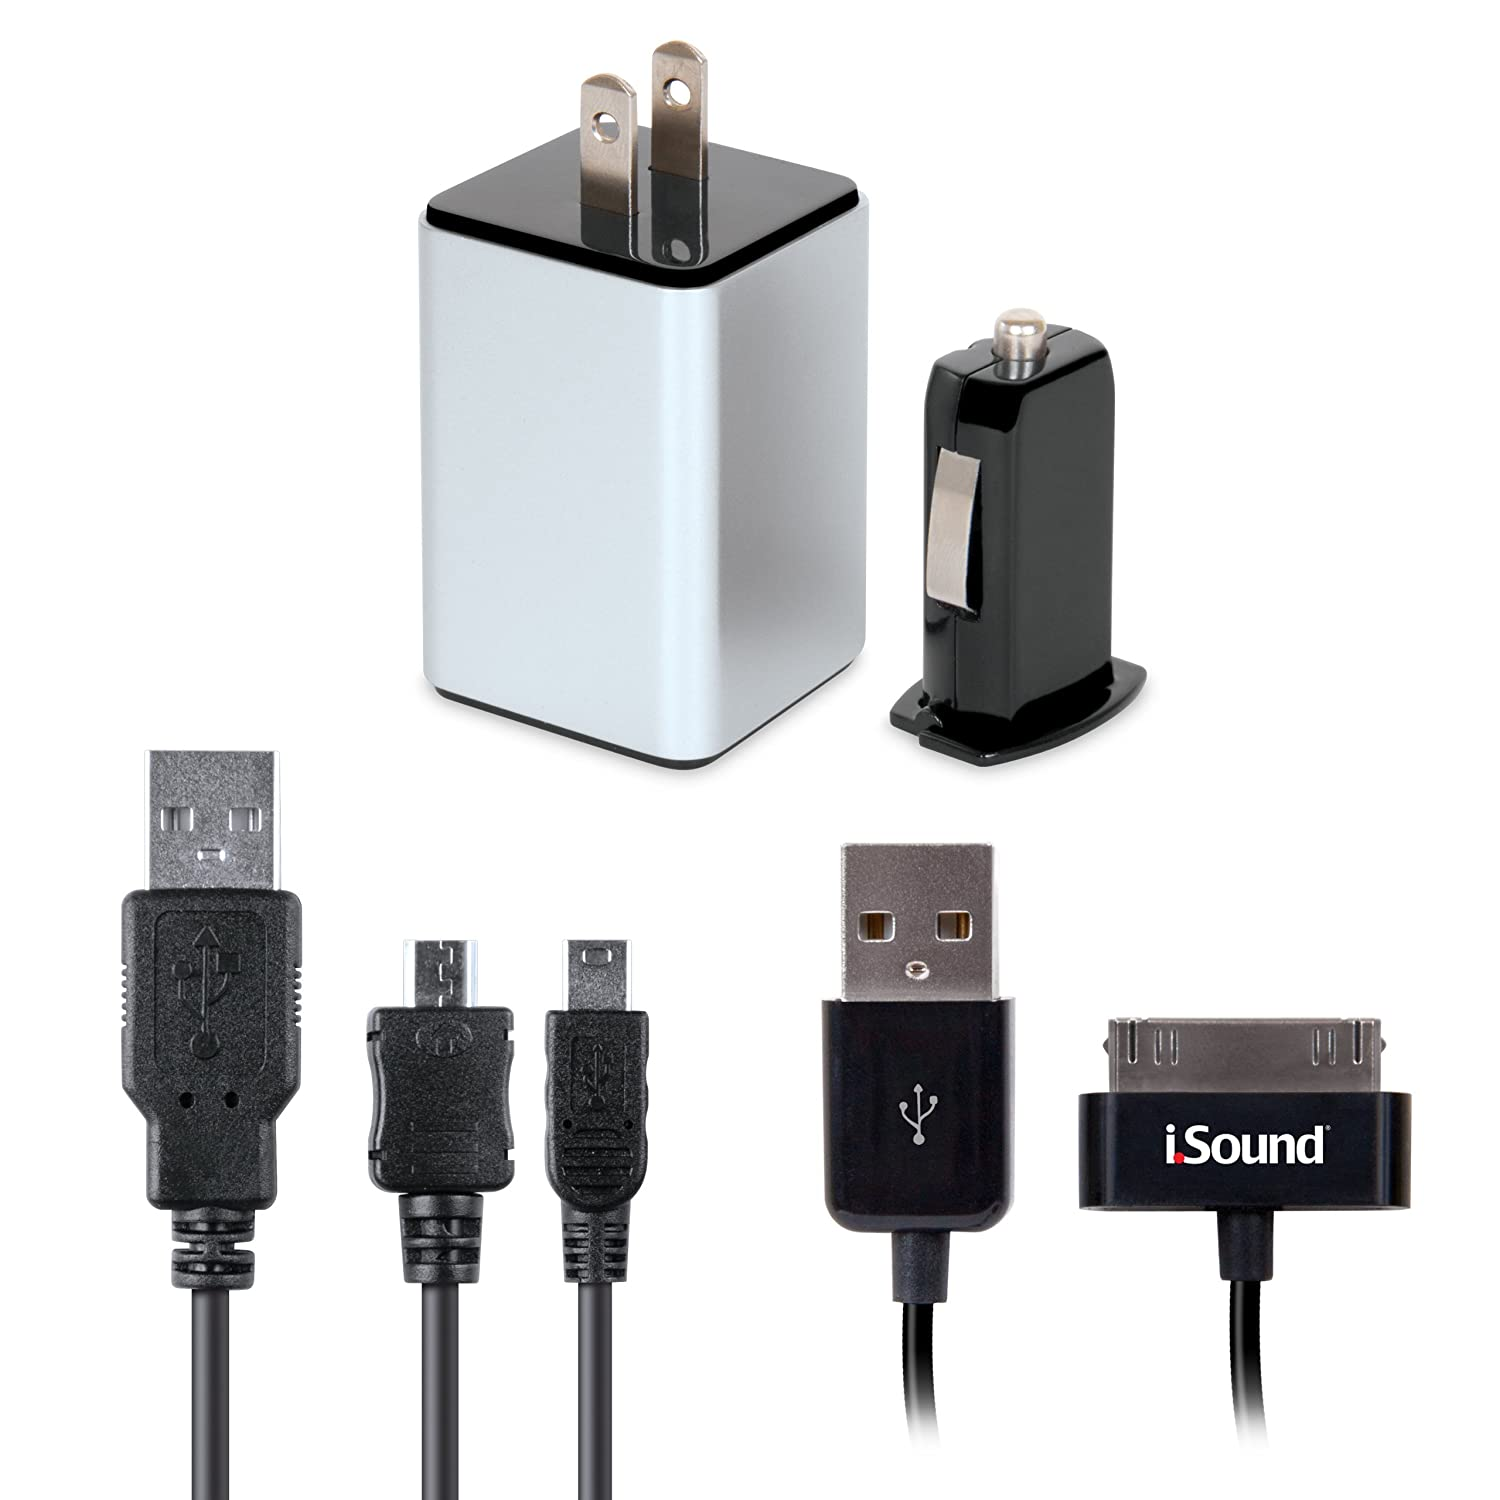 Amazon.com: 4 en 1 Cargador Combo Pack para más dispositivos móviles de Apple USB y: Electronics